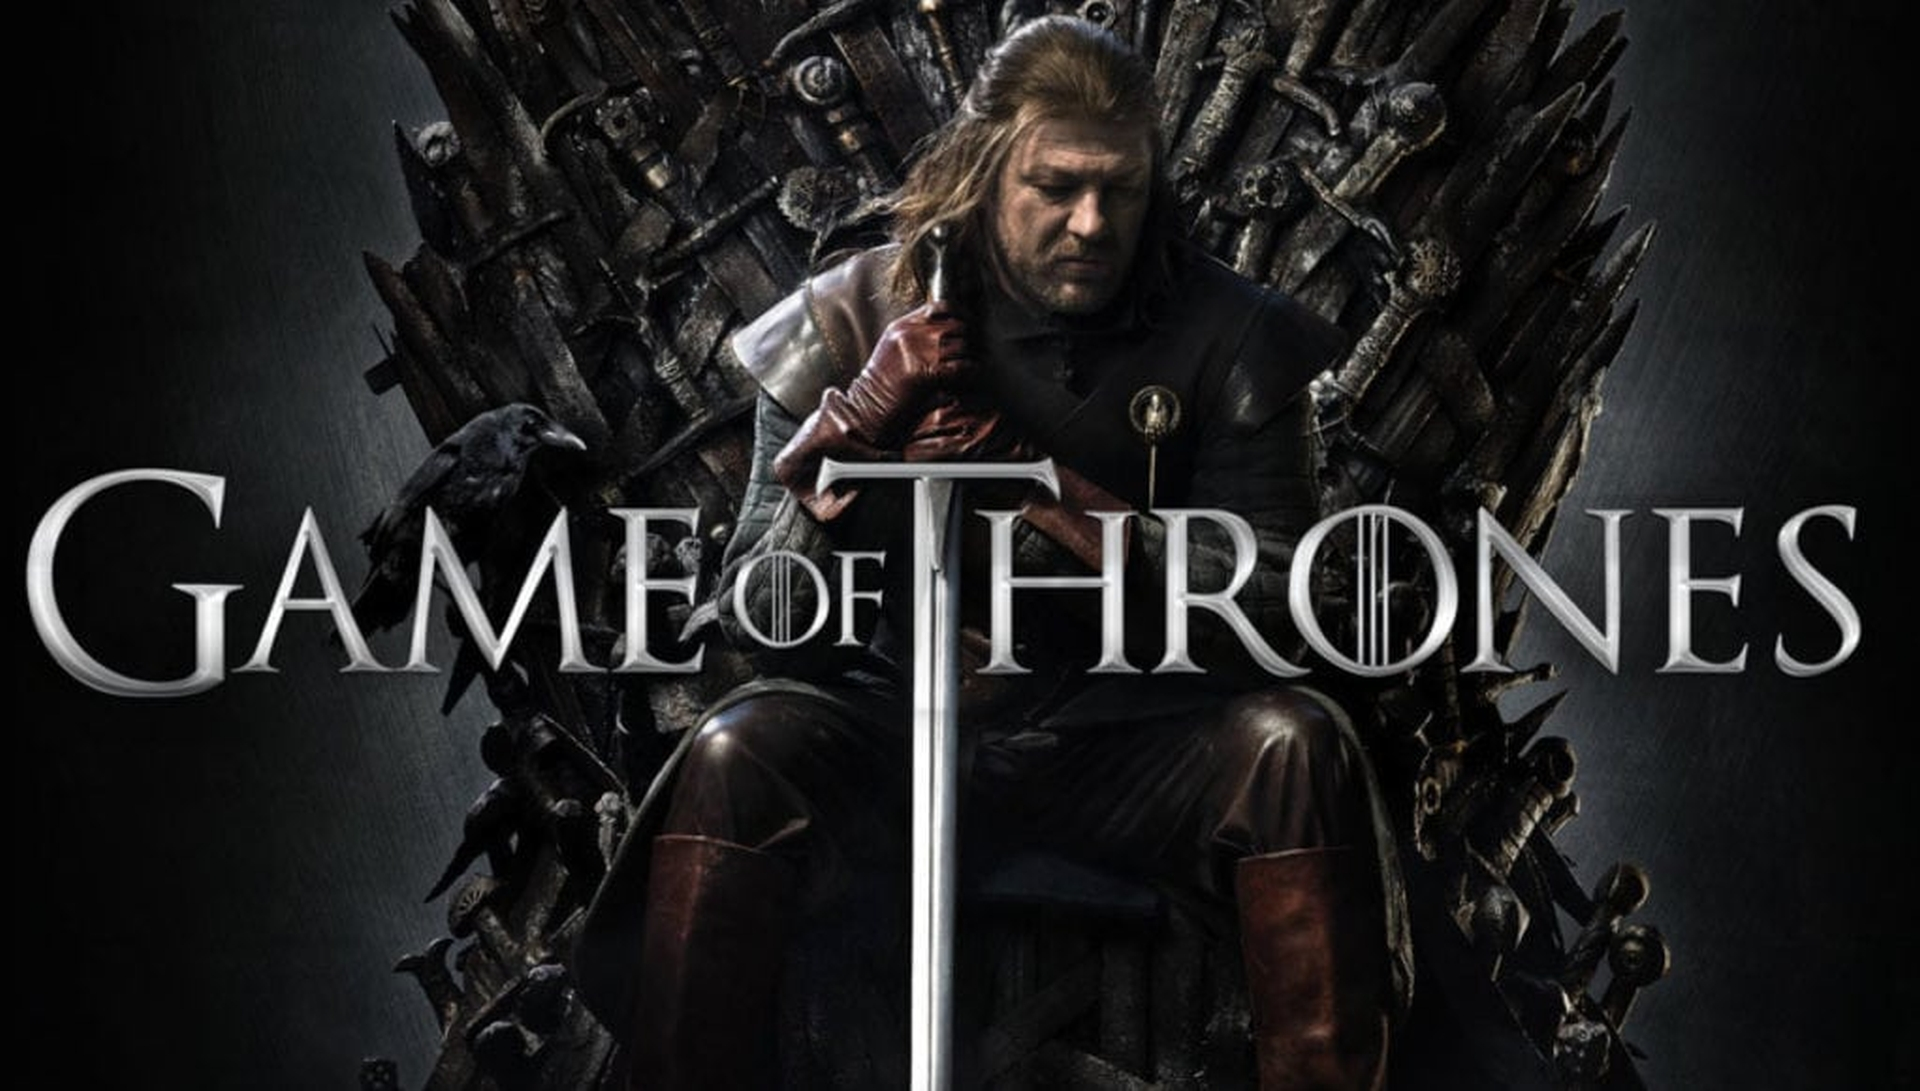 game-of-thrones-1021x580.jpg